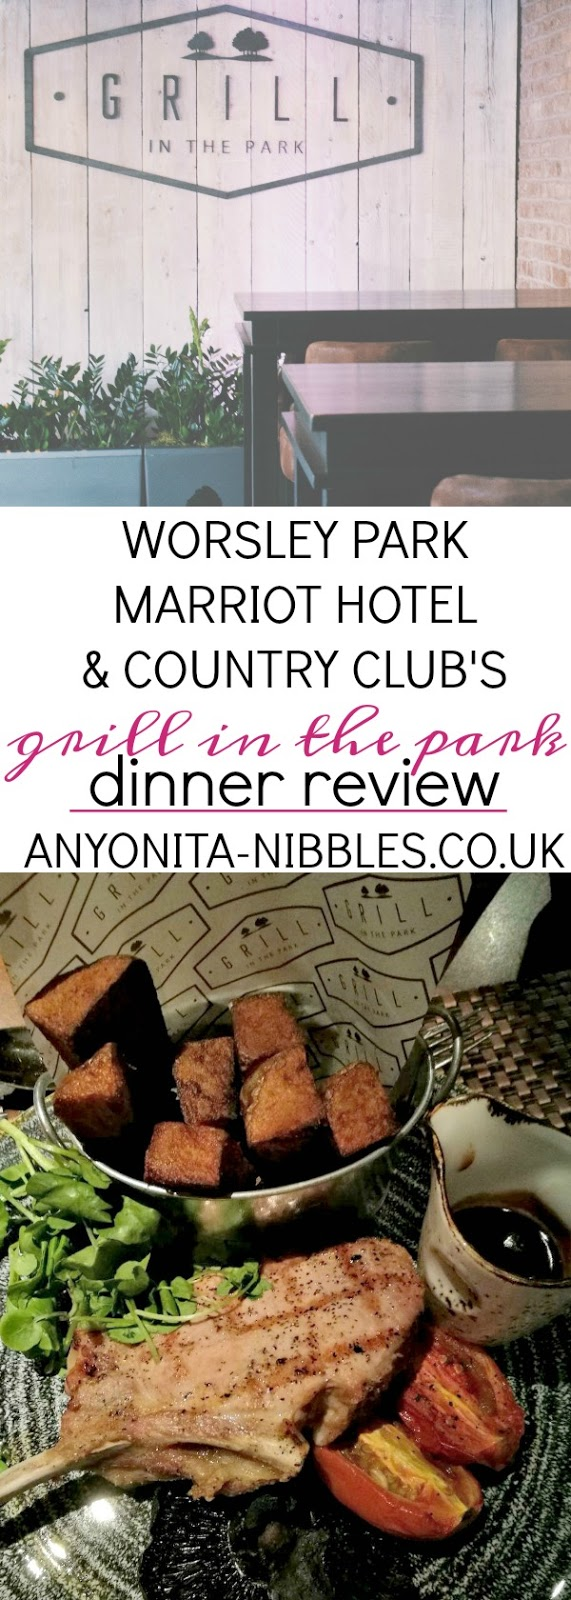 Worsley Park Marriott Hotel and Country Club Grill in the Park Review